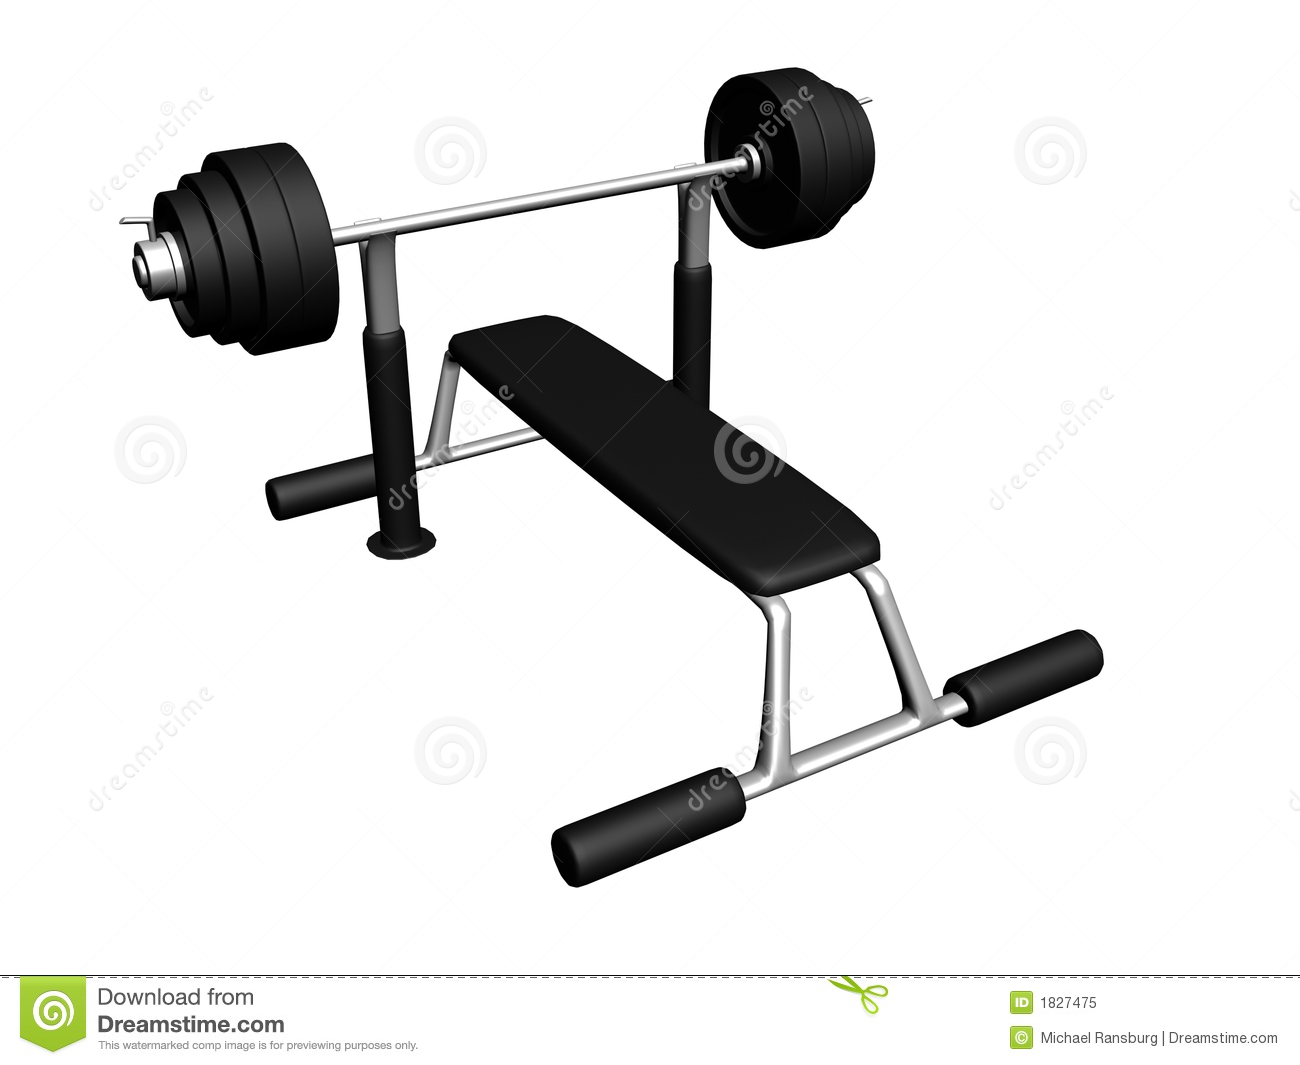 Work out equipment clipart png freeuse stock Work out equipment clipart - ClipartFest png freeuse stock